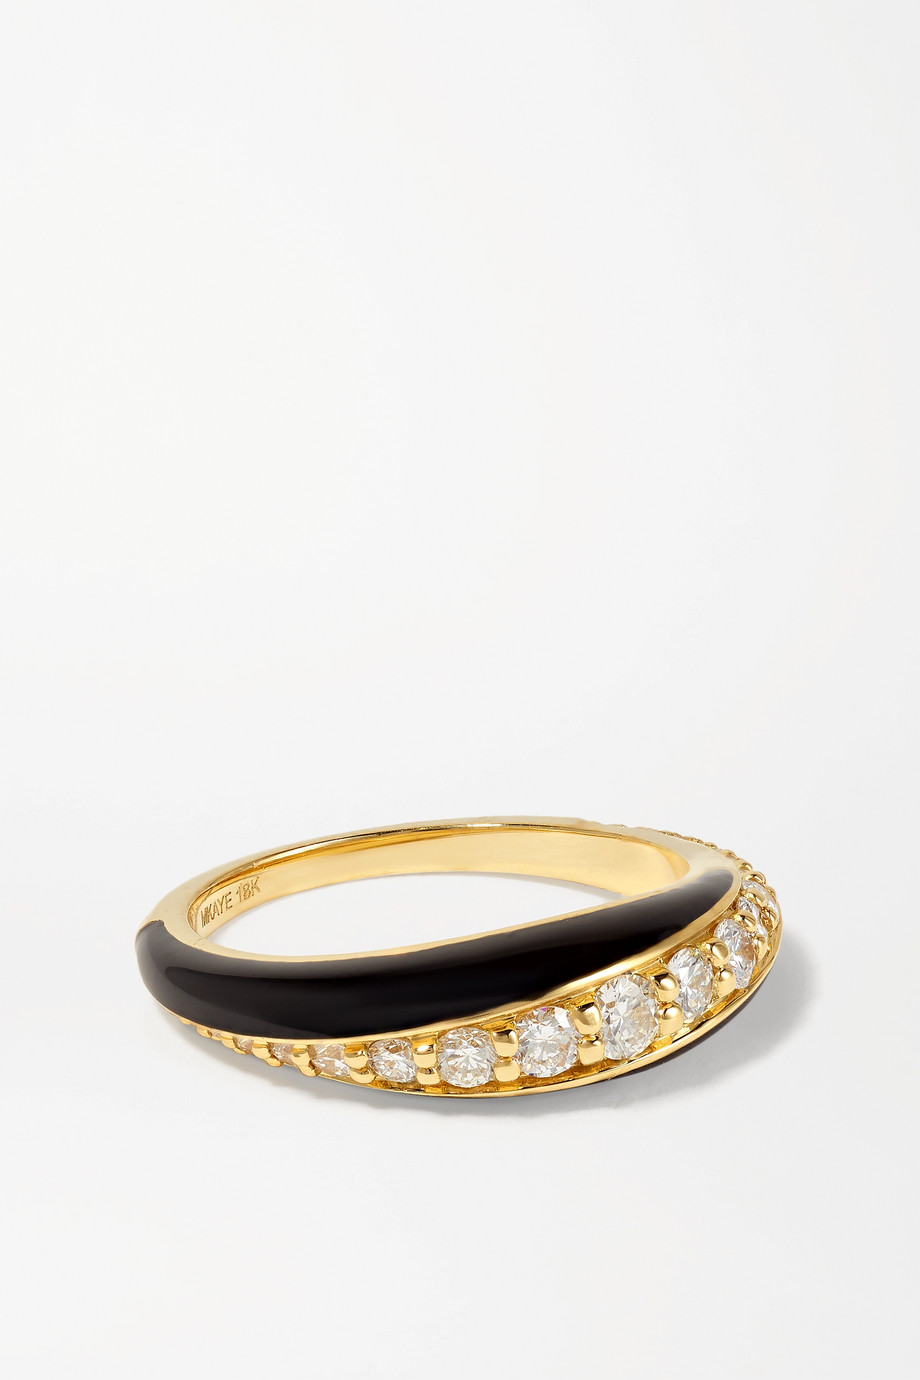 Melissa Kaye Remi small 18-karat gold, diamond and enamel ring